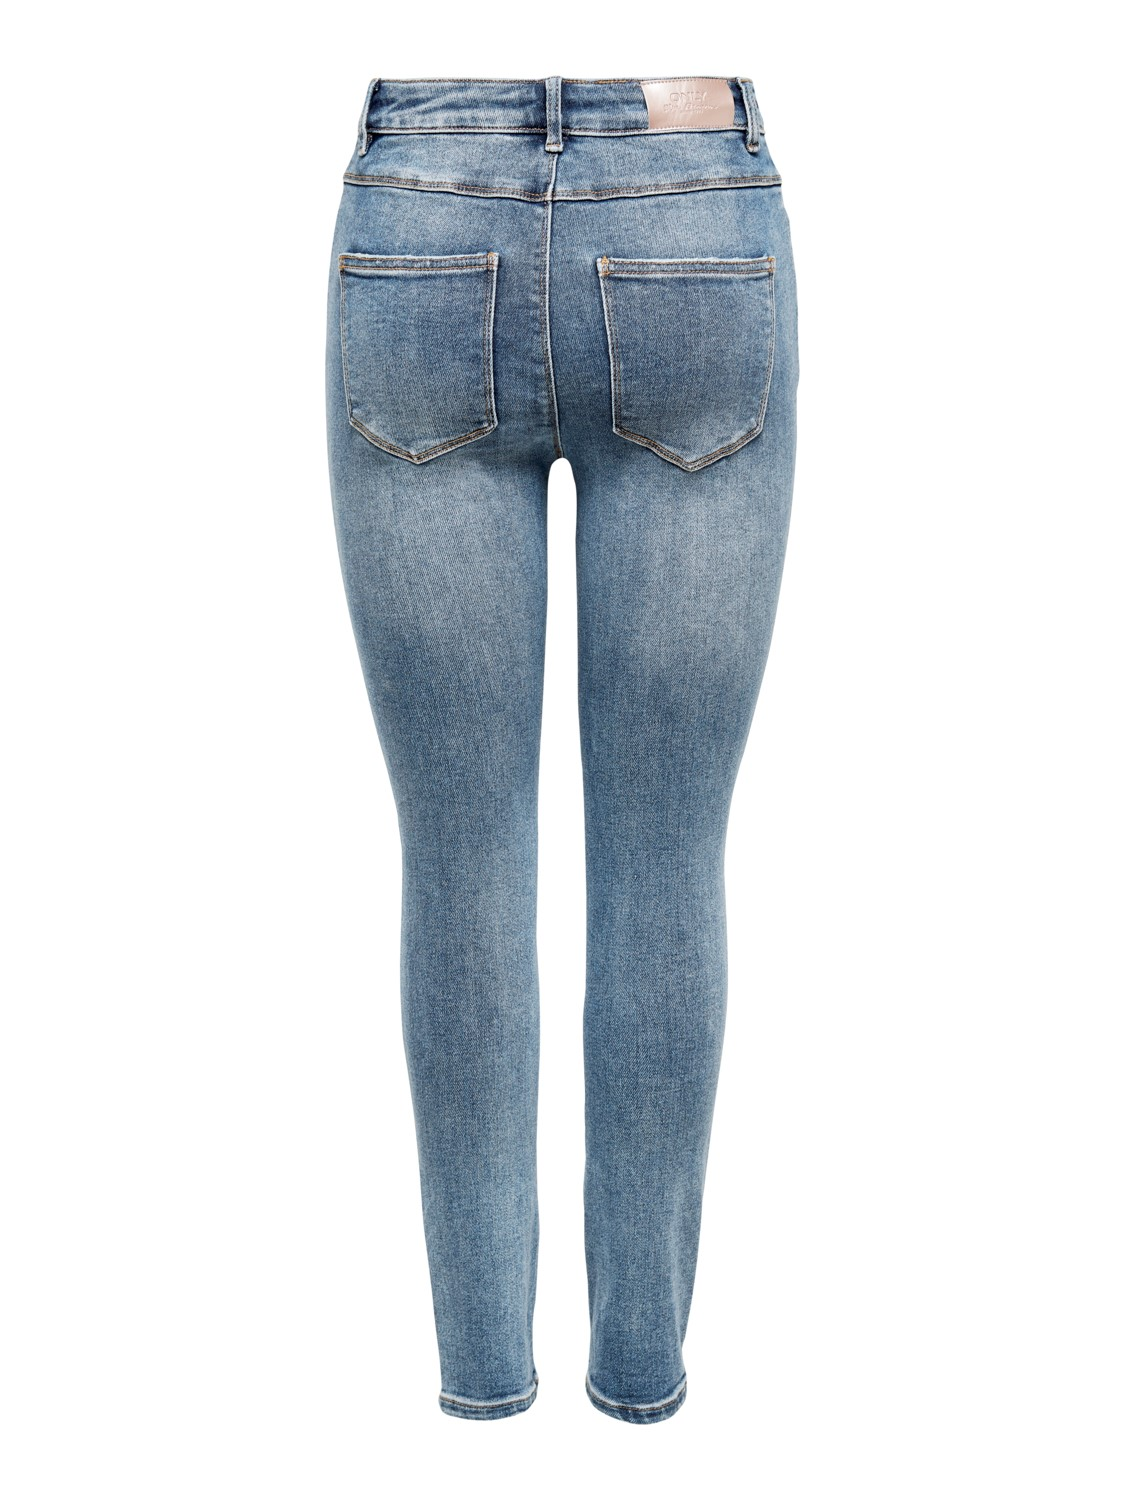 only-damen-jeans-onlmila-hw-sk-ank-bb-jeans-bj13994-skinny-fit-blau-medium-blue-denim, 39.99 EUR @ jeans